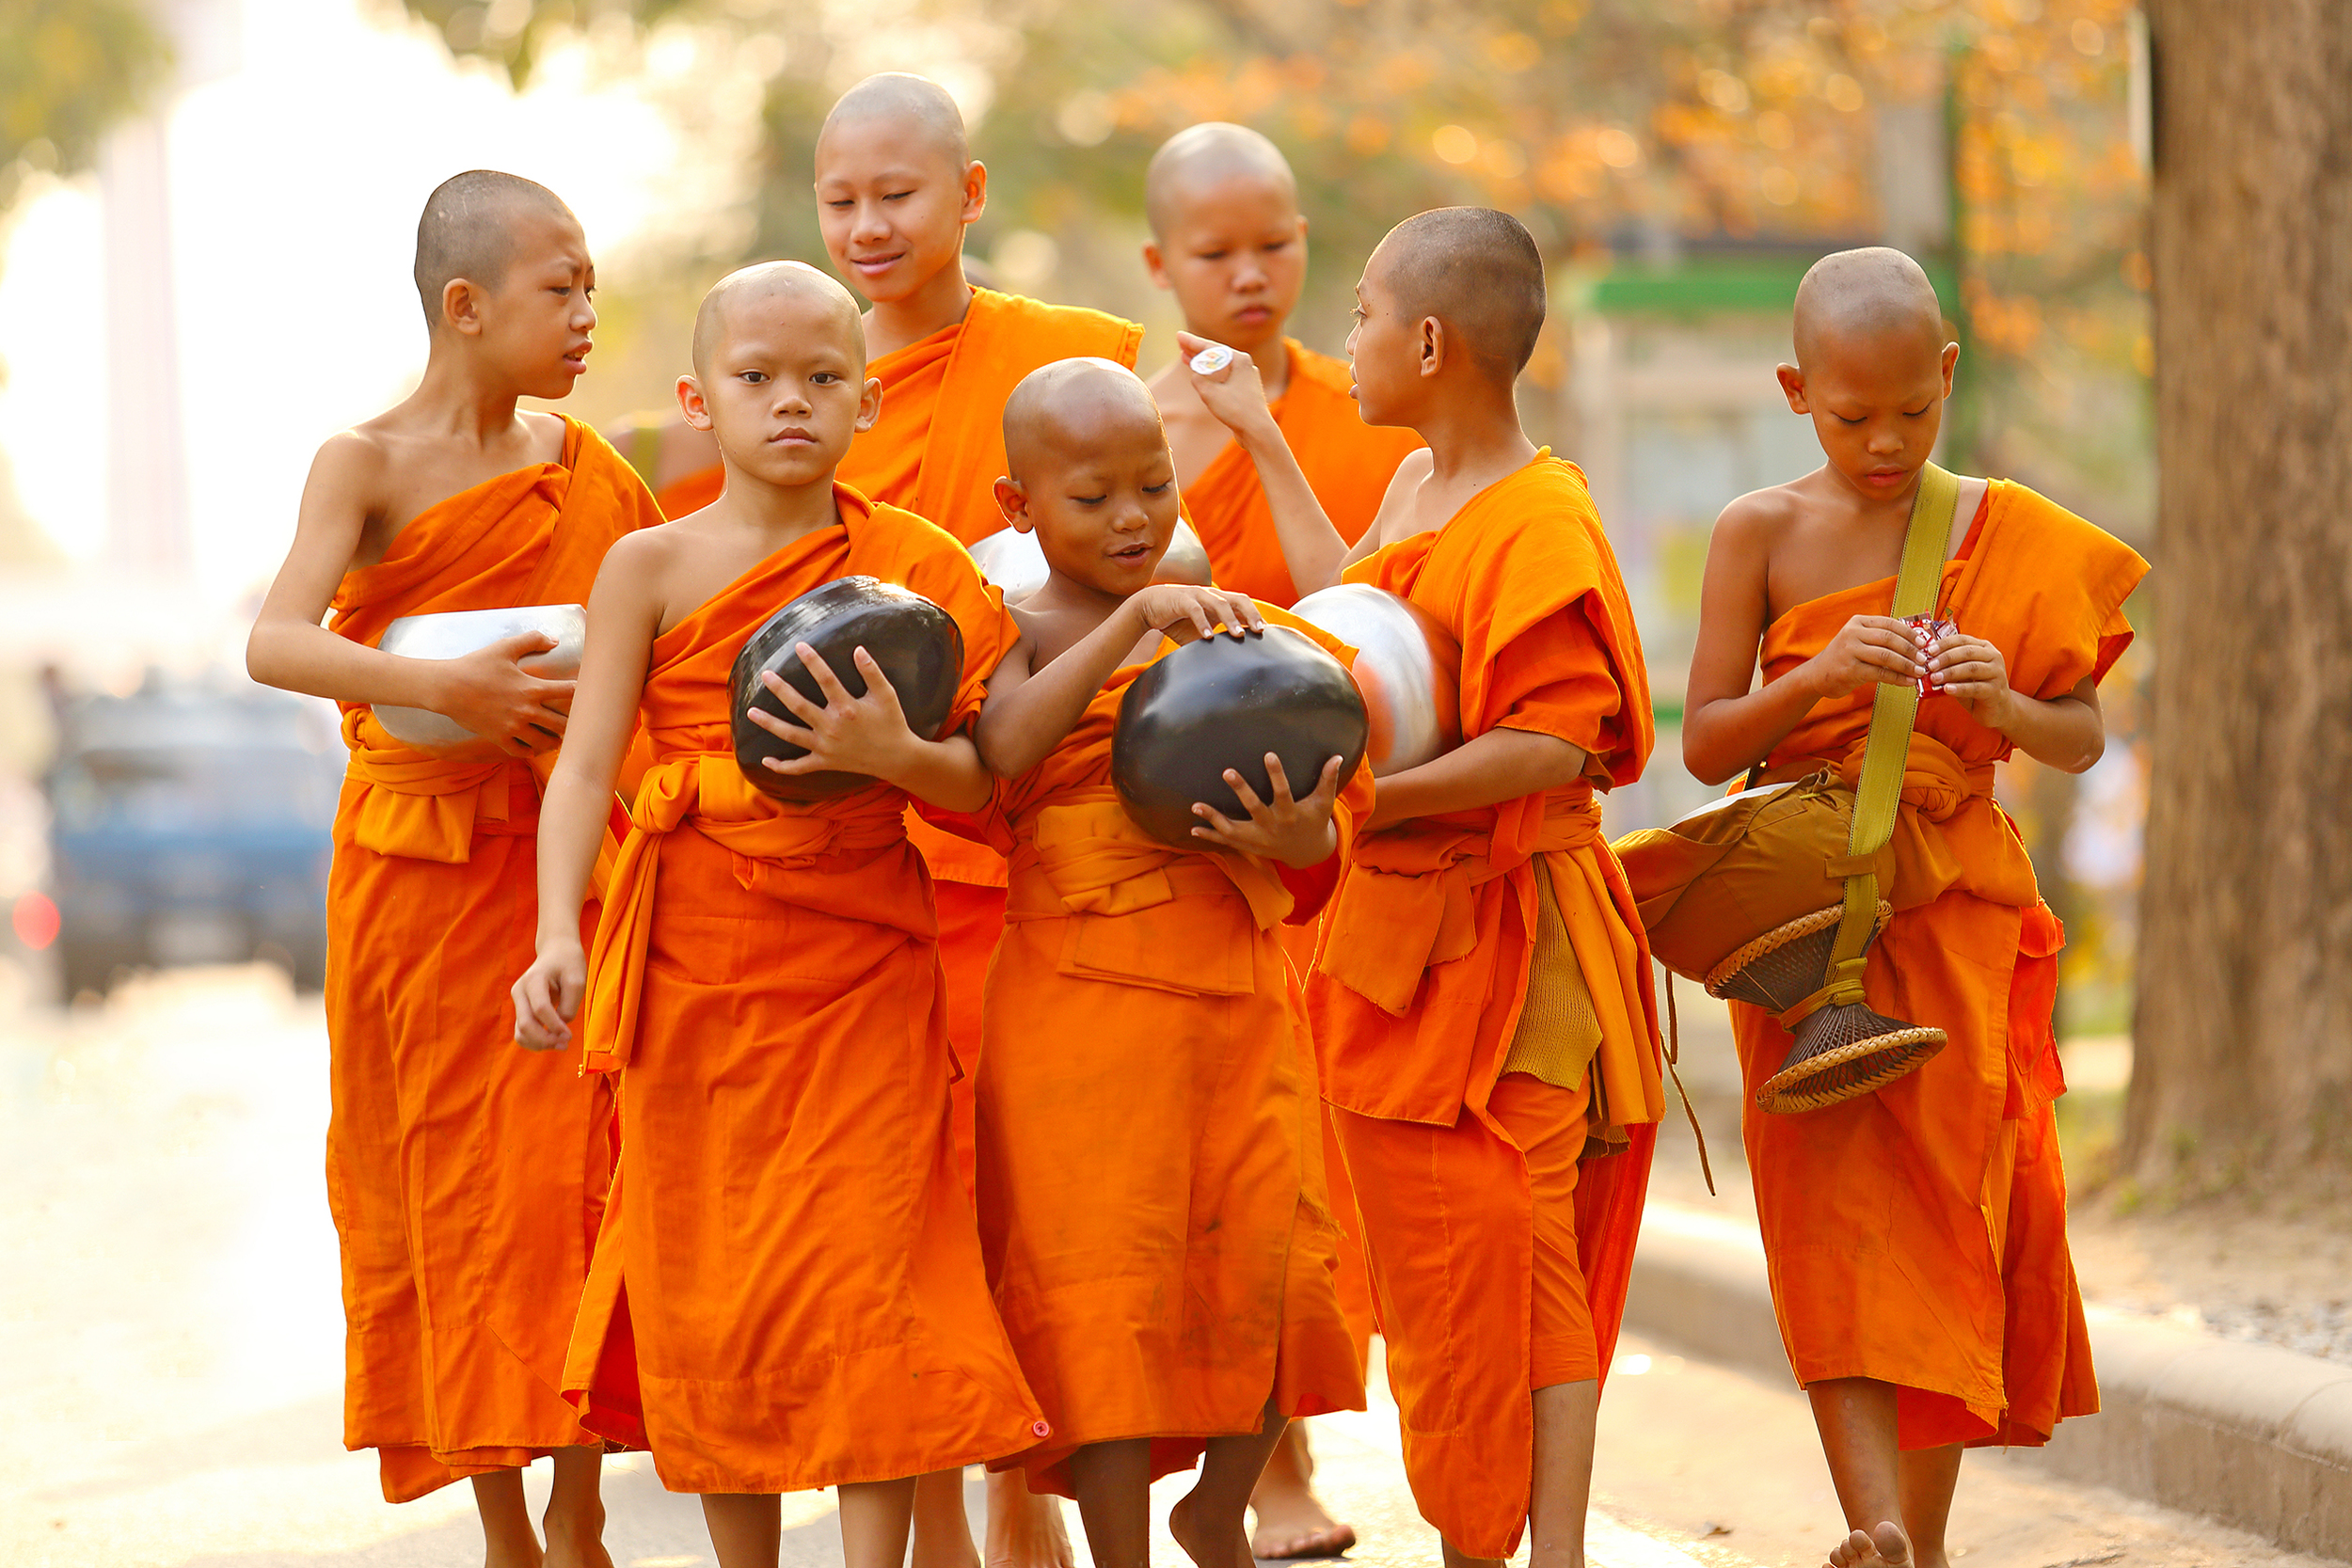 A group of young monks in orange robes